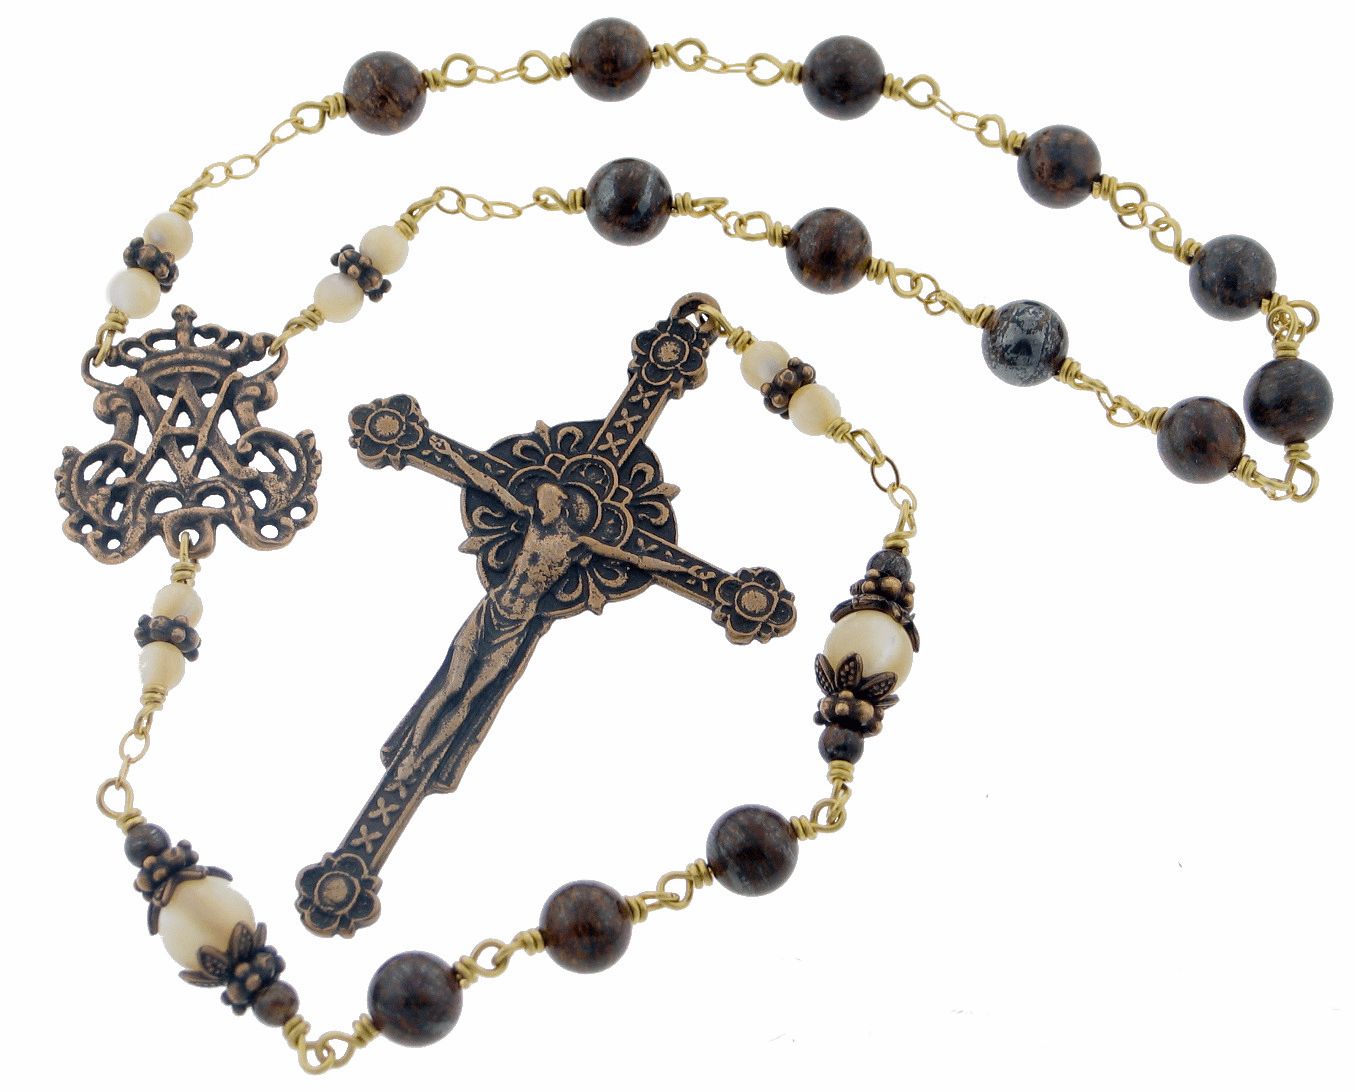 Esty Heavenly Divine Handmade Rosaries